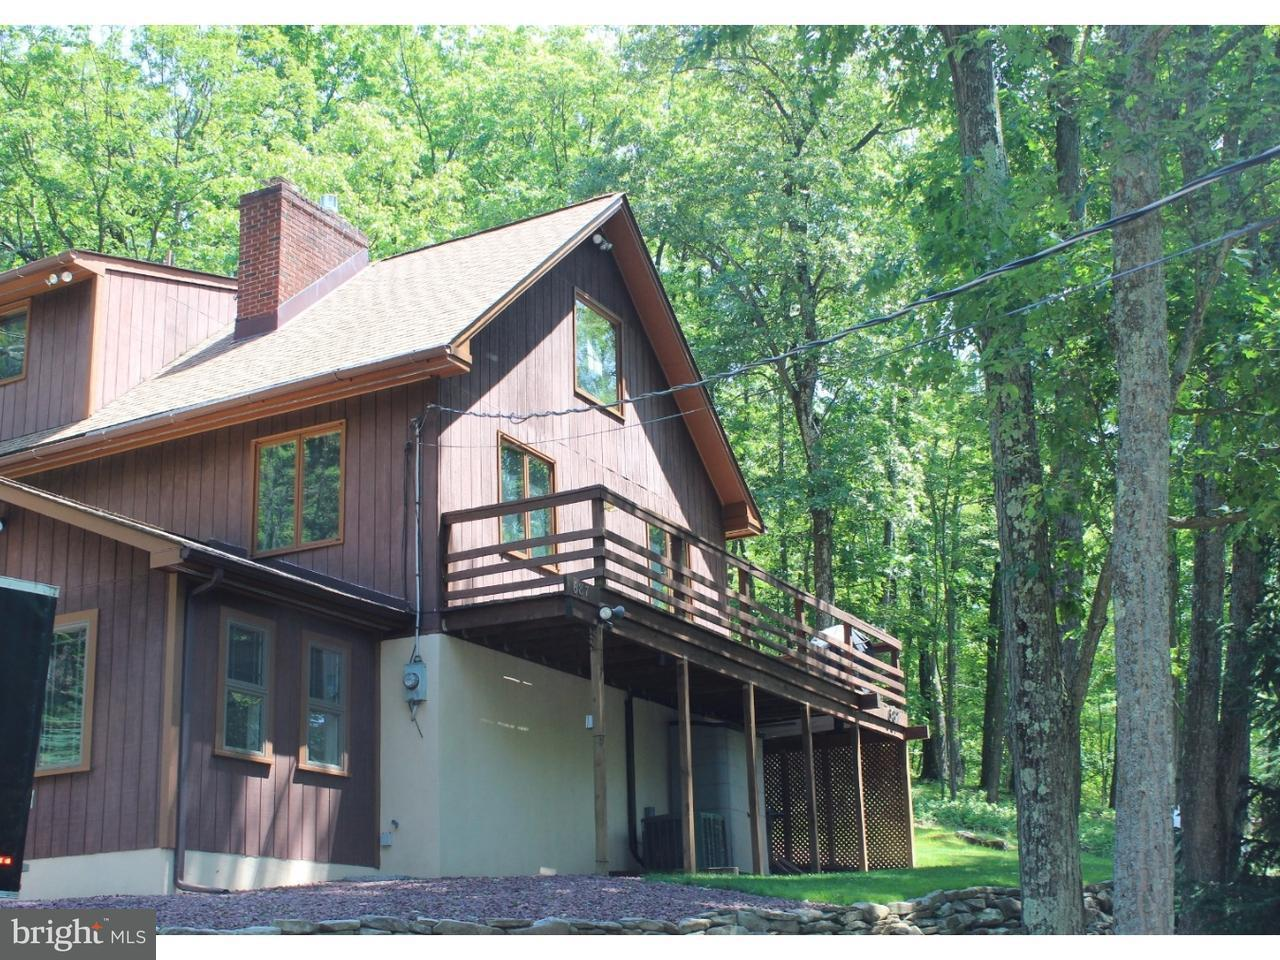 Single Family Home for Sale at 687 TAHOE Lane Zion Grove, Pennsylvania 17985 United States